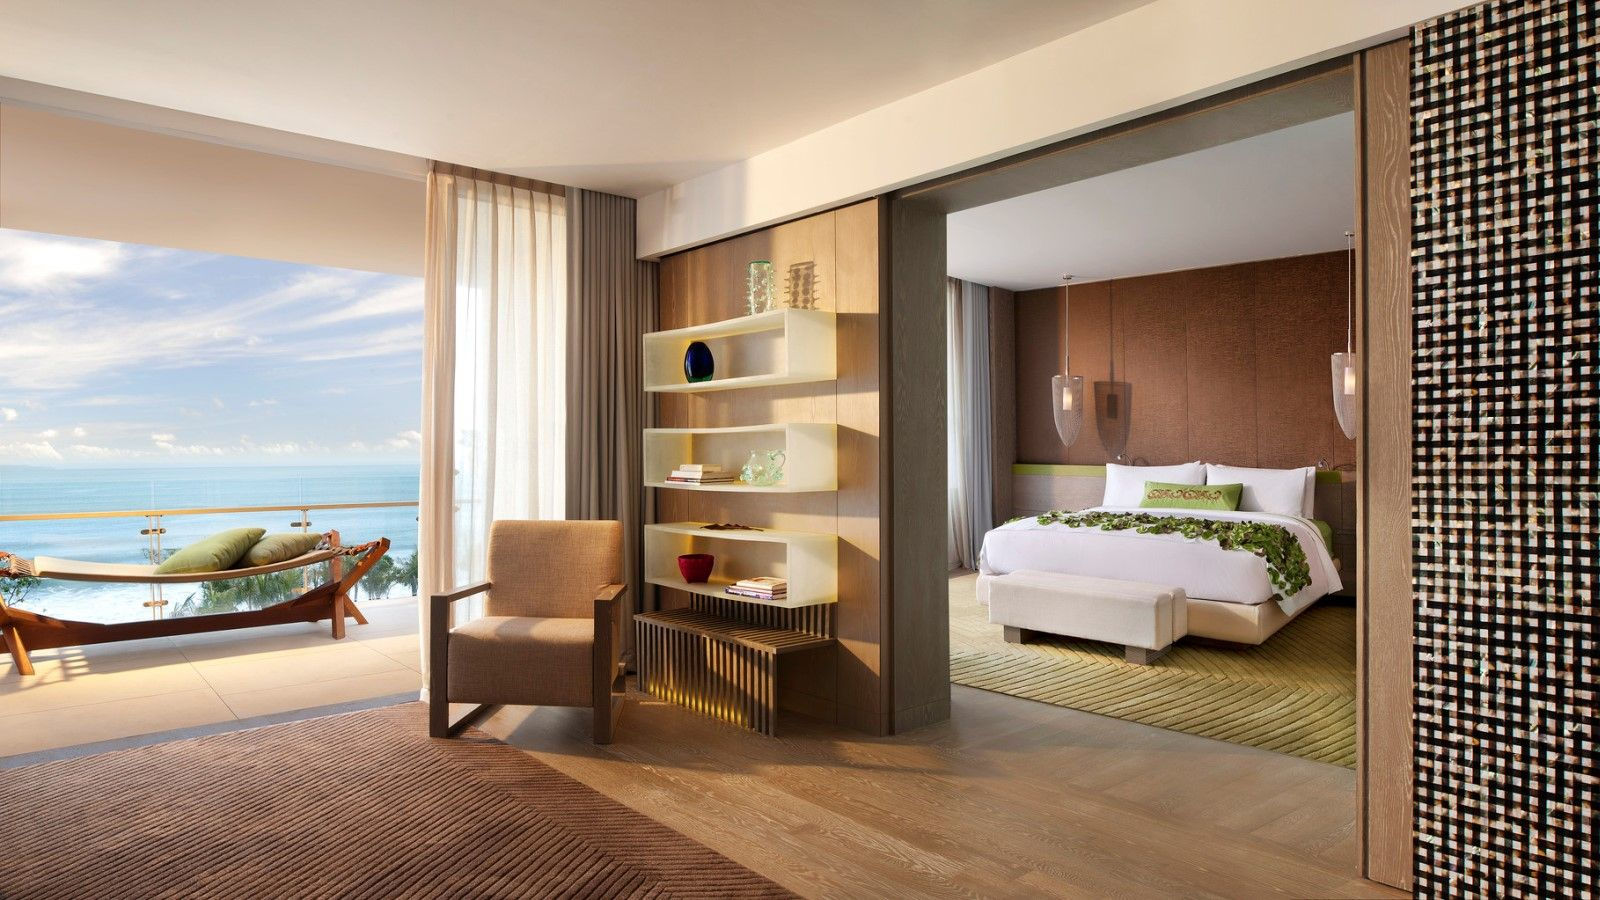 Bali 5 star hotels guest rooms at w retreat spa bali for W hotel in room dining menu singapore